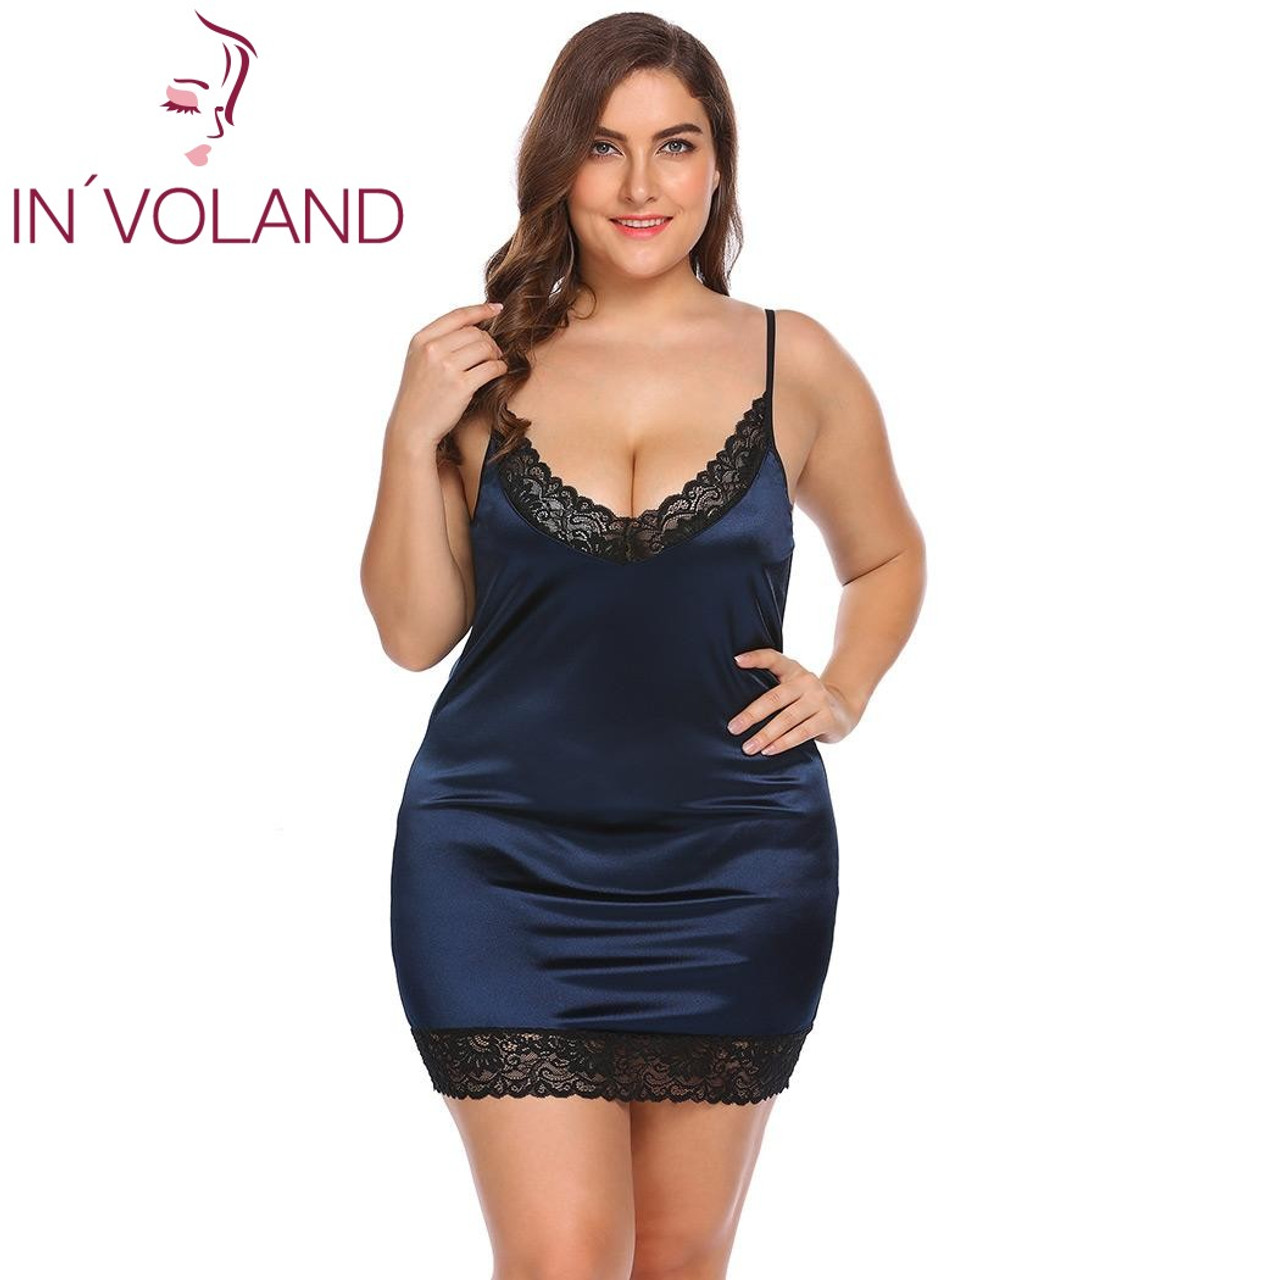 bf4636ac2 ... IN VOLAND Plus Size Women Sleepwear Sexy Lingerie Dress XL-5XL Robe  Night Dress ...